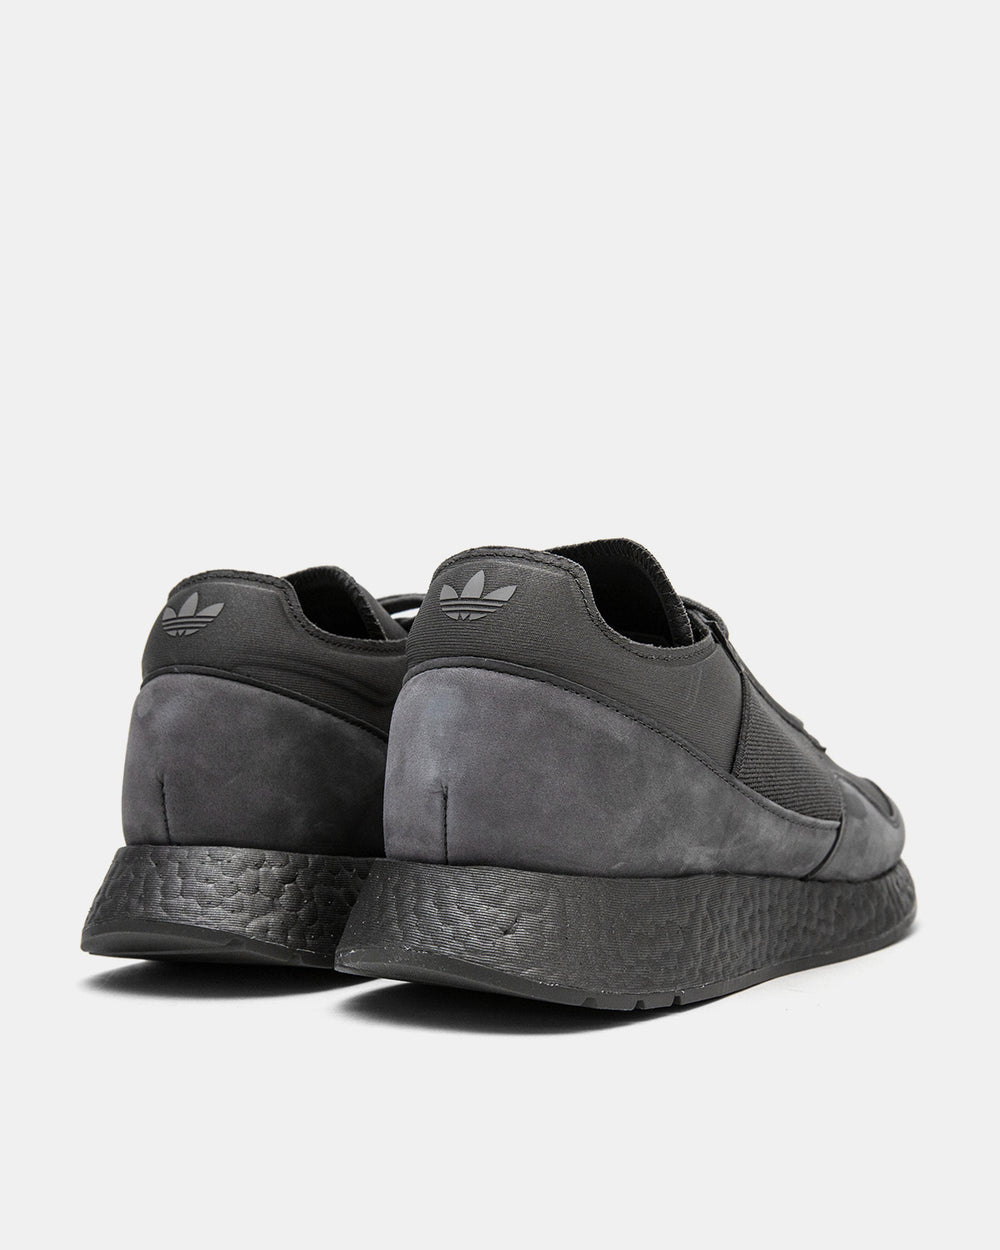 adidas - New York Present Arsham (Grey)